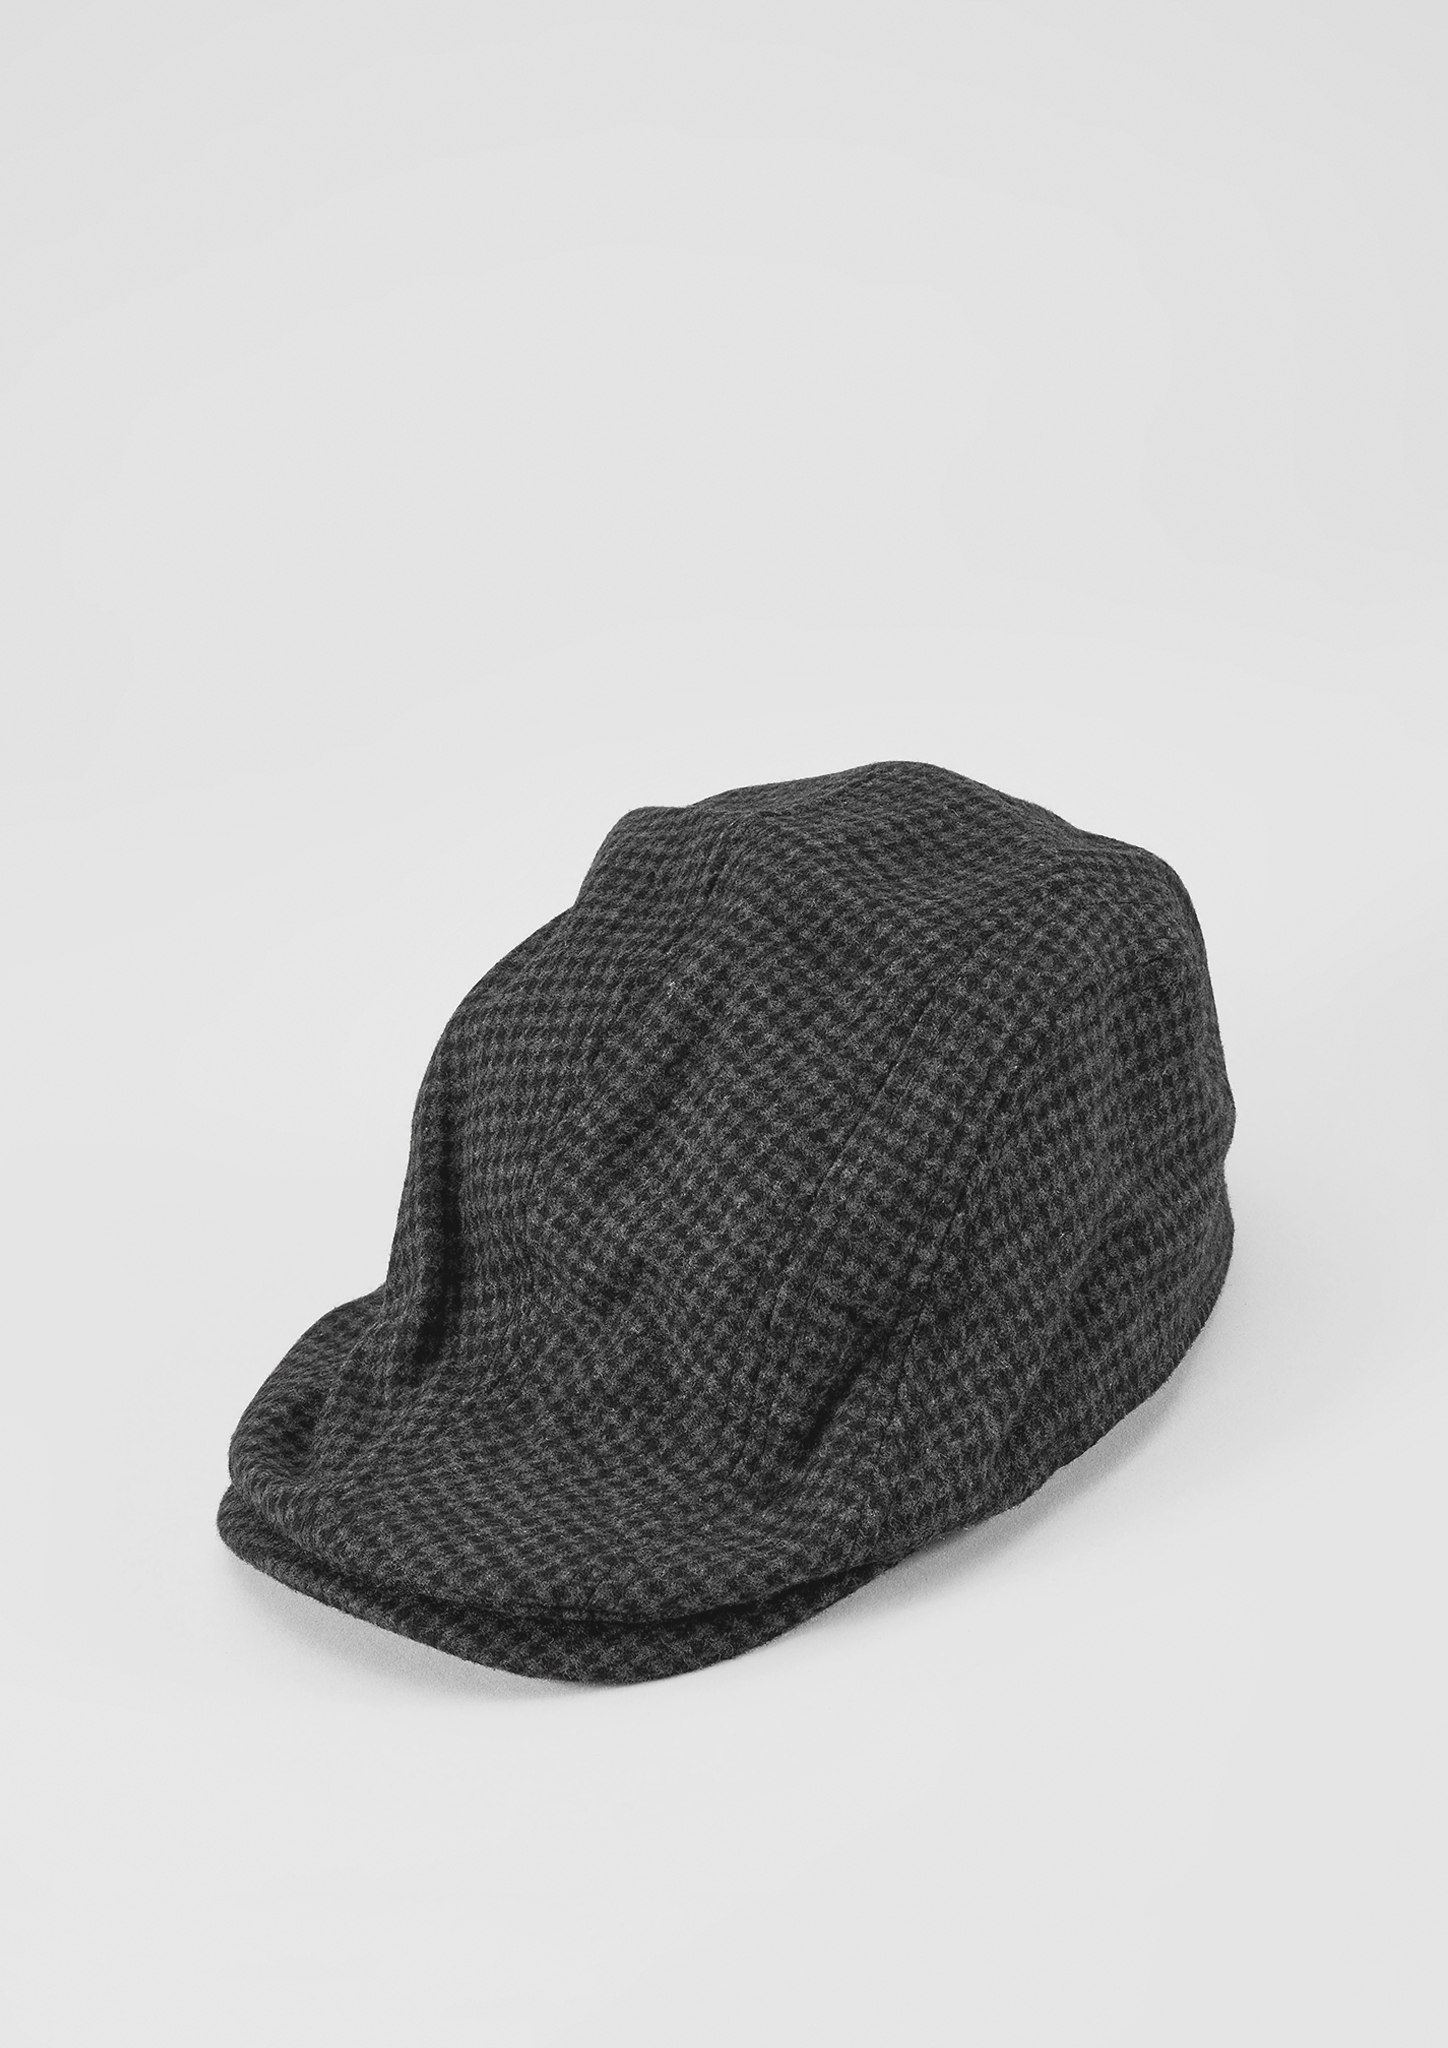 Kappe | Accessoires > Caps > Sonstige Caps | Grau | Obermaterial 90% polyester -  10% wolle| futter 100% baumwolle | s.Oliver